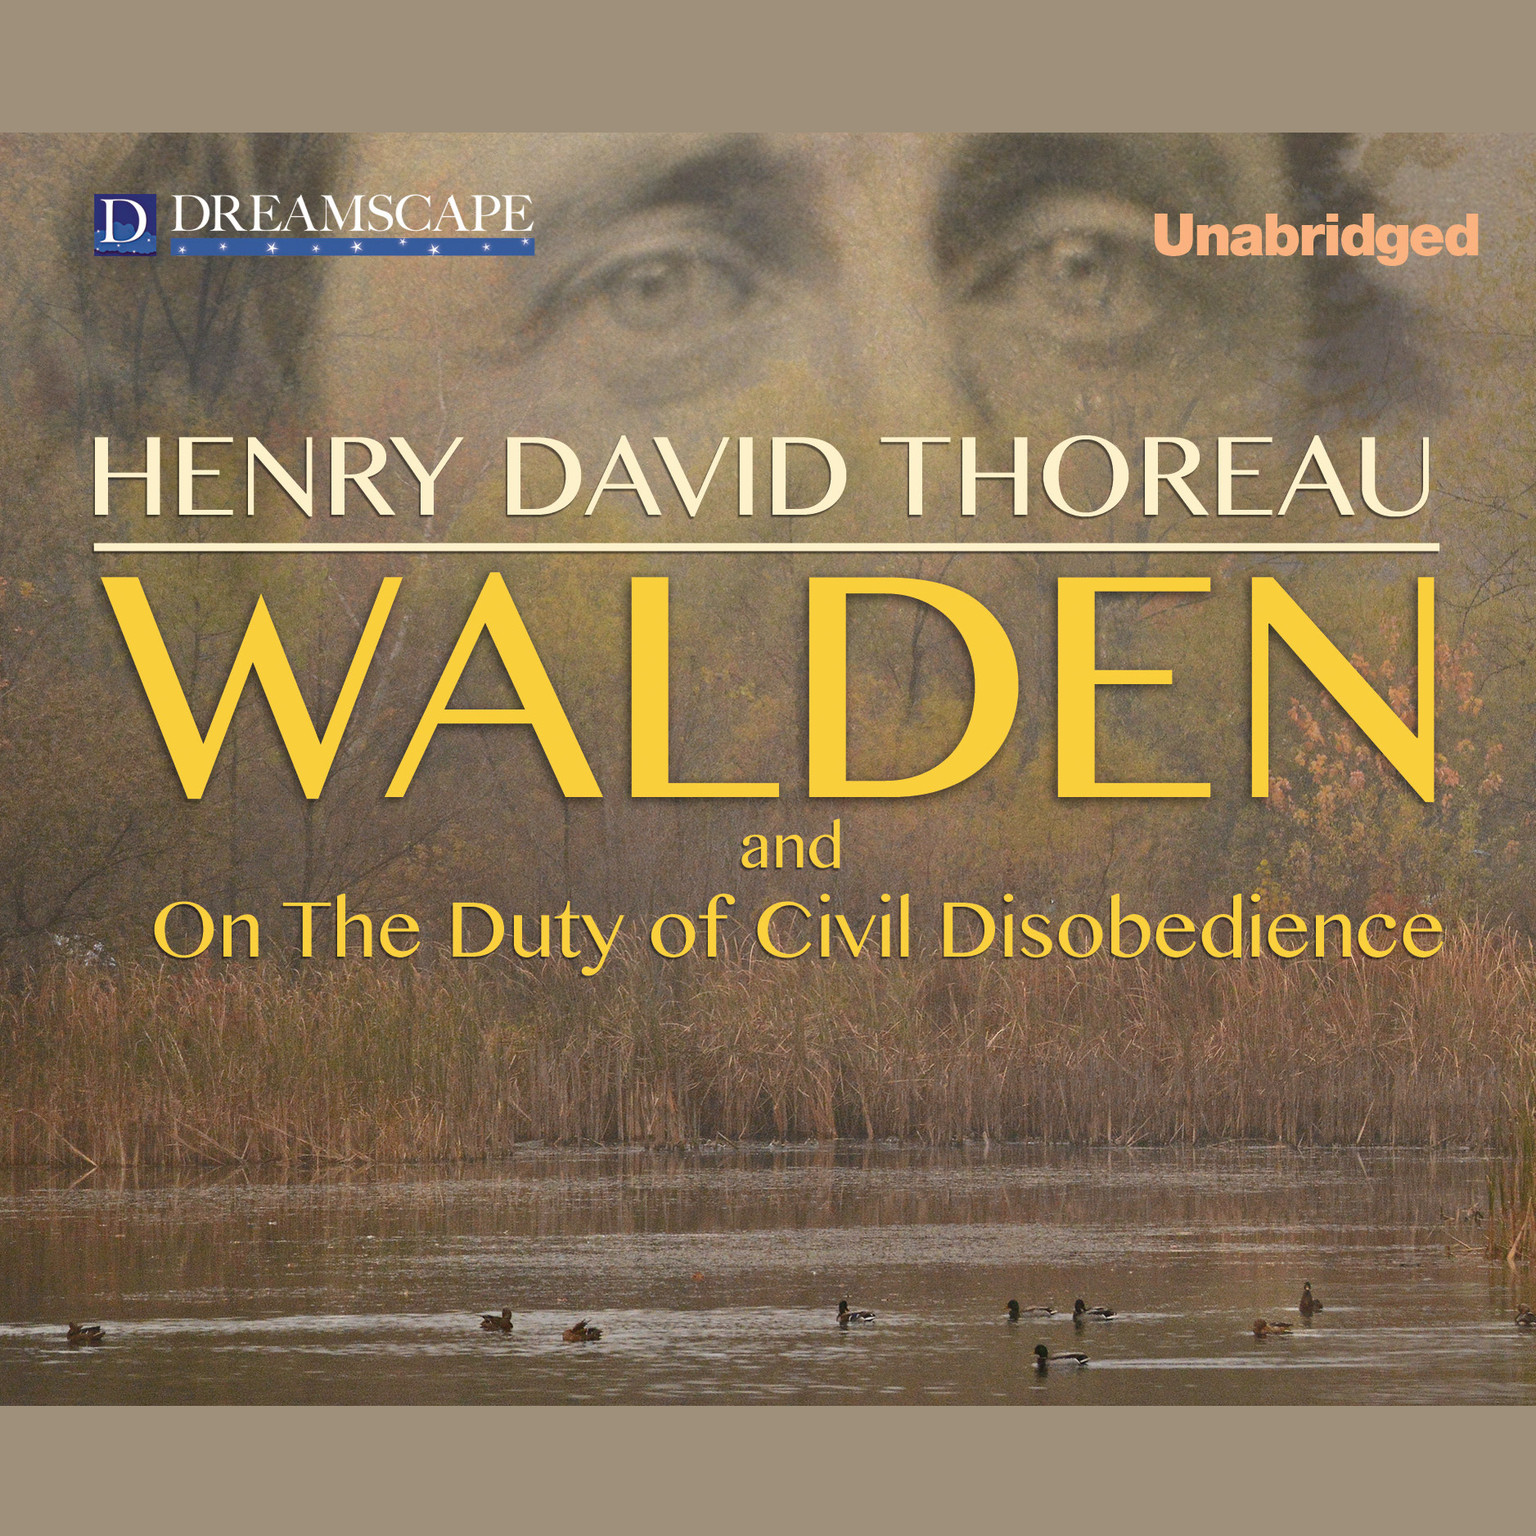 duty civil disobedience essay David henry thoreau's essay civil disobedience argues that if a government is being unfair, it is an individual's duty to stand up against it this penlighten post briefs you on the civil disobedience summary for you in an effort to explain thoreau's ideas better.